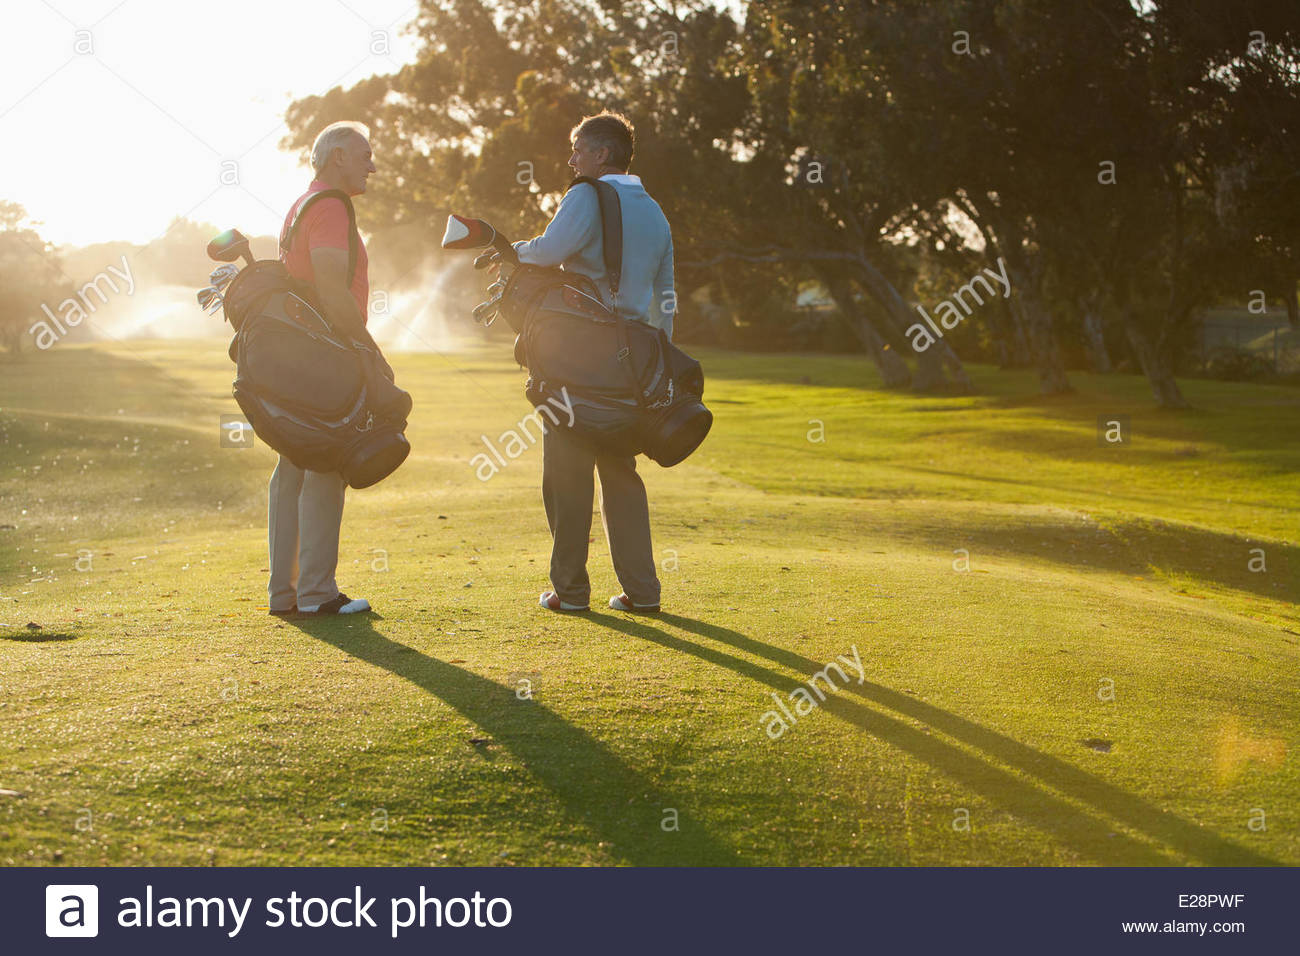 Men carrying golf bags on golf course - Stock Image